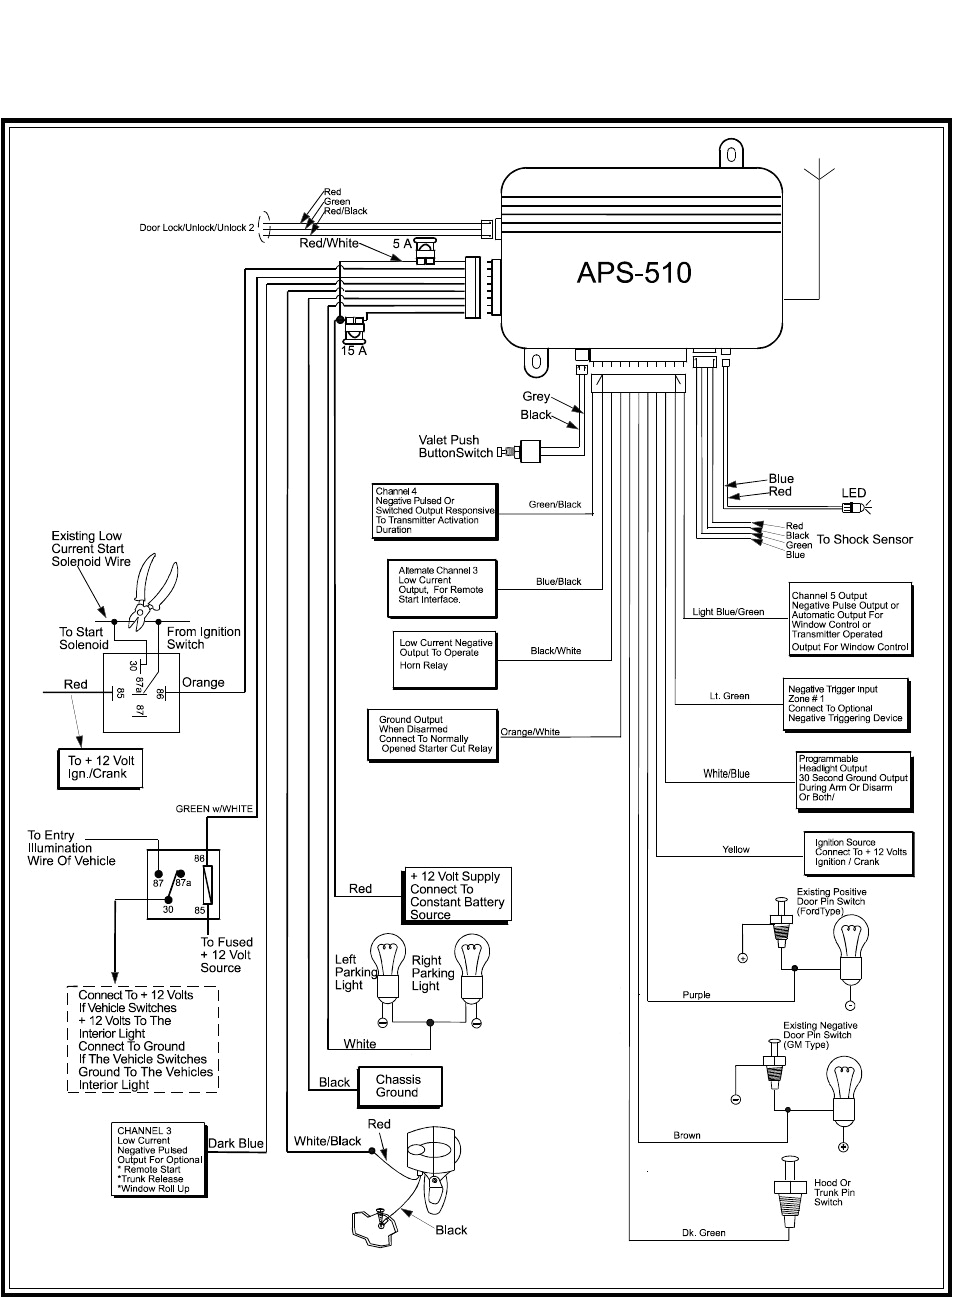 1995 bmw 325is bulldog alarms wiring diagrams diagram base website wiring  diagrams - hamletplotdiagram.liguriani.it  diagram base website full edition - liguriani